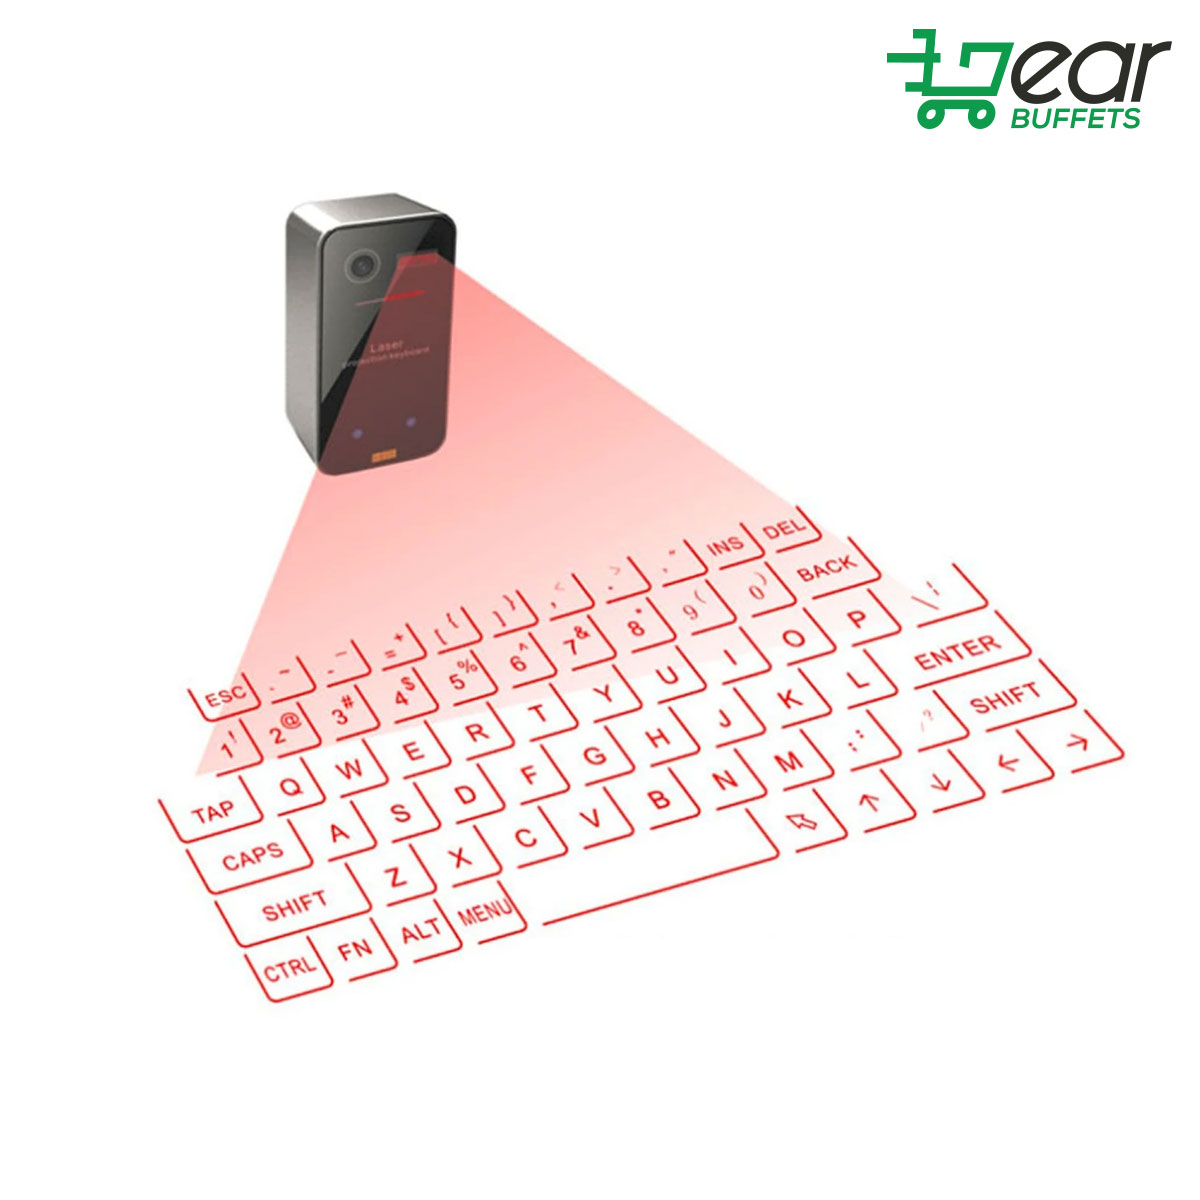 Easy-to-Use Bluetooth Wireless Laser Keyboard Just Click....  #TechTuesday #laserkeyboard #gadgets #lovefortech ⁣⁣⁣⁣#ad #sponsored #paidpromotion #iphonex #iphonexsmax #iphonexs⁣⁣ #iphonexr #iphonesty #iphoneonly